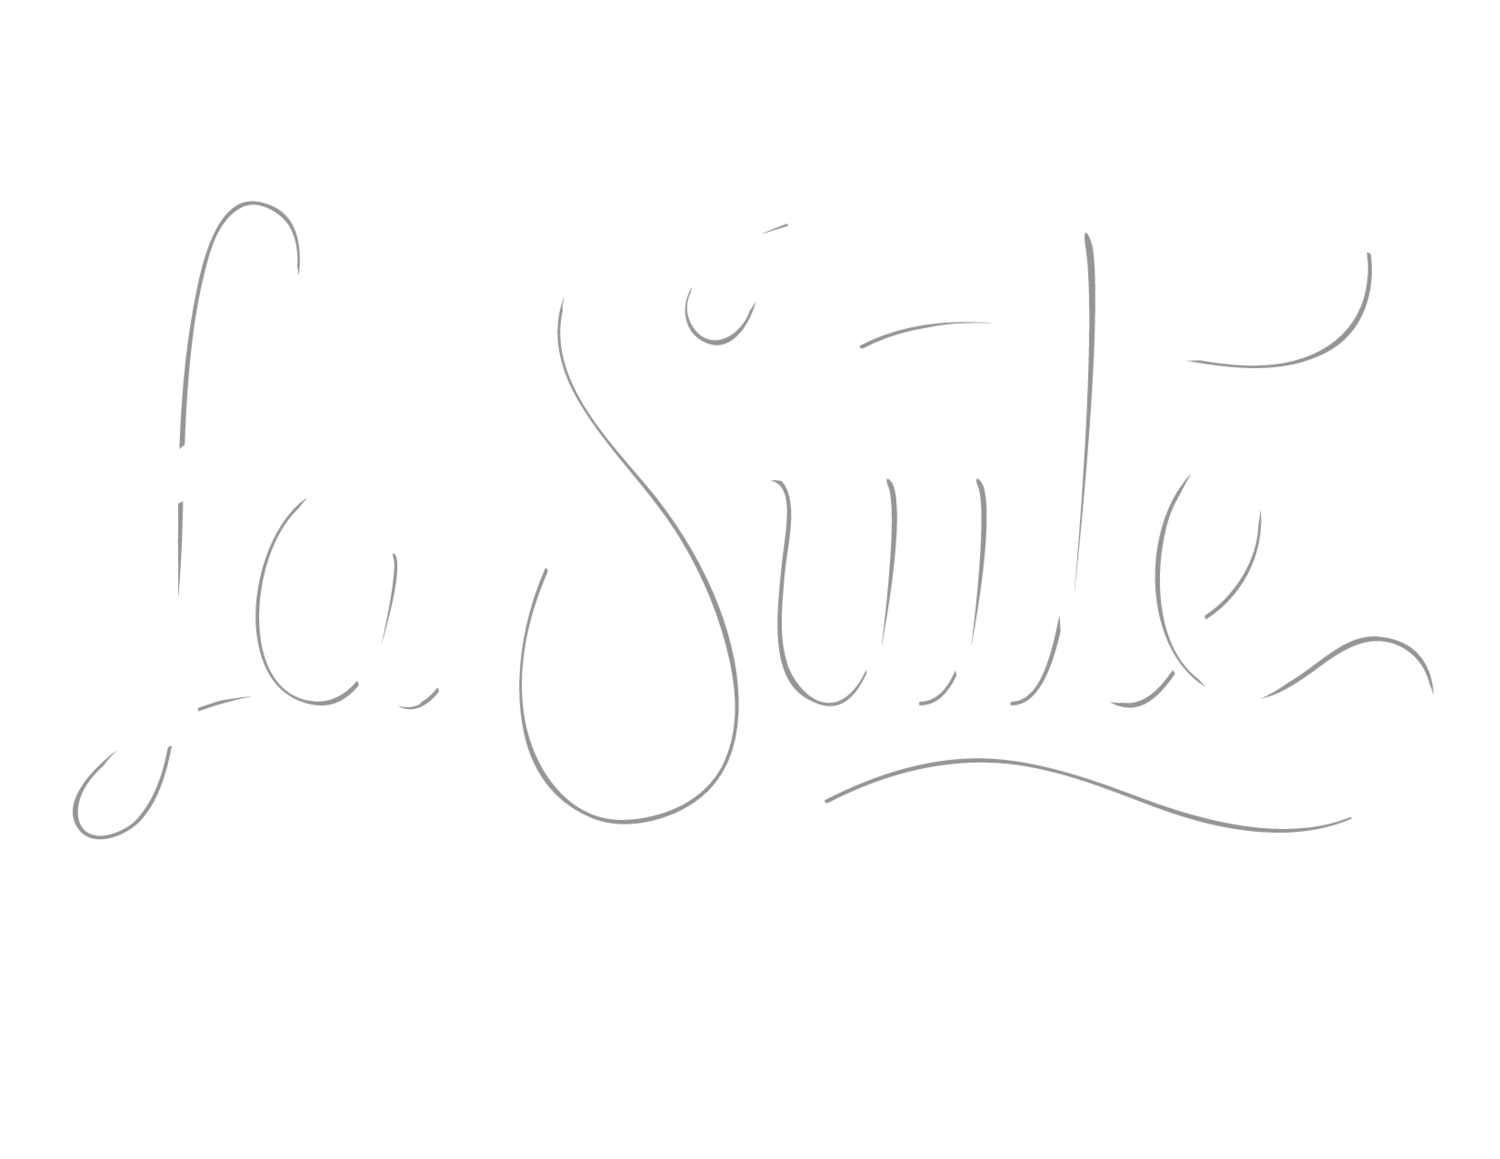 La Suite Motel Boutique